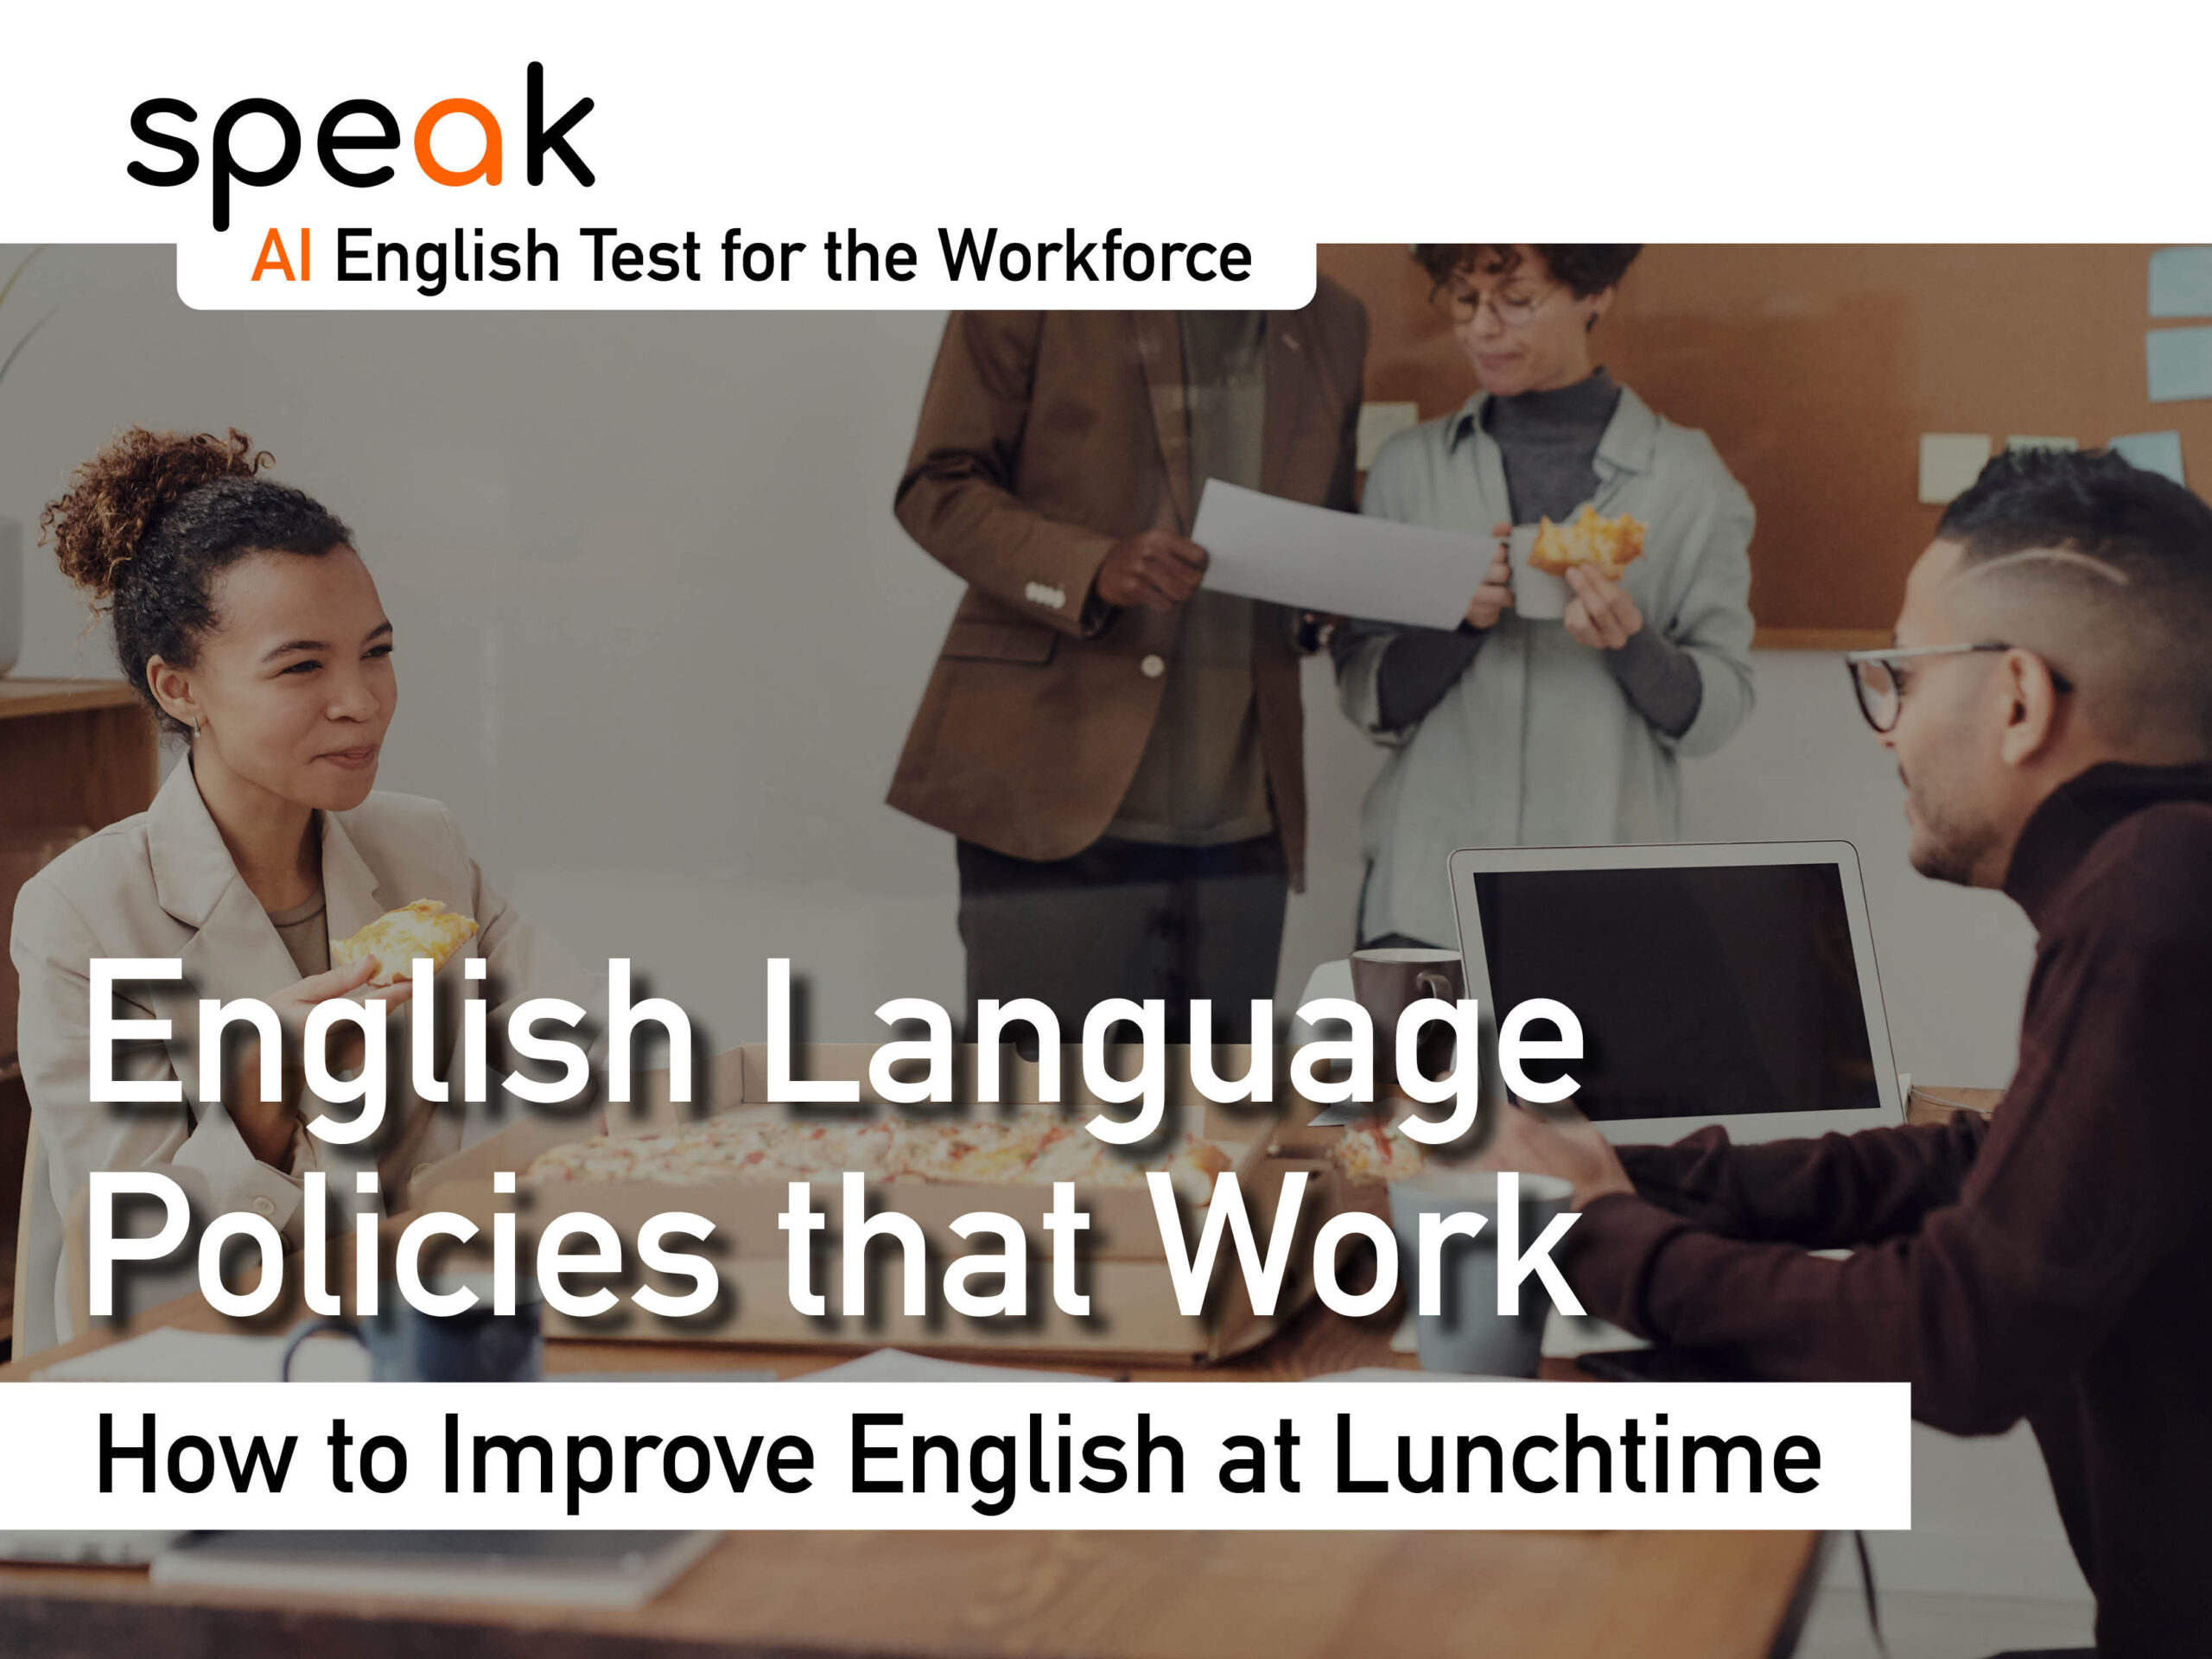 englsihs, englsoh, englsish, neglihs policies at work and lunchtime